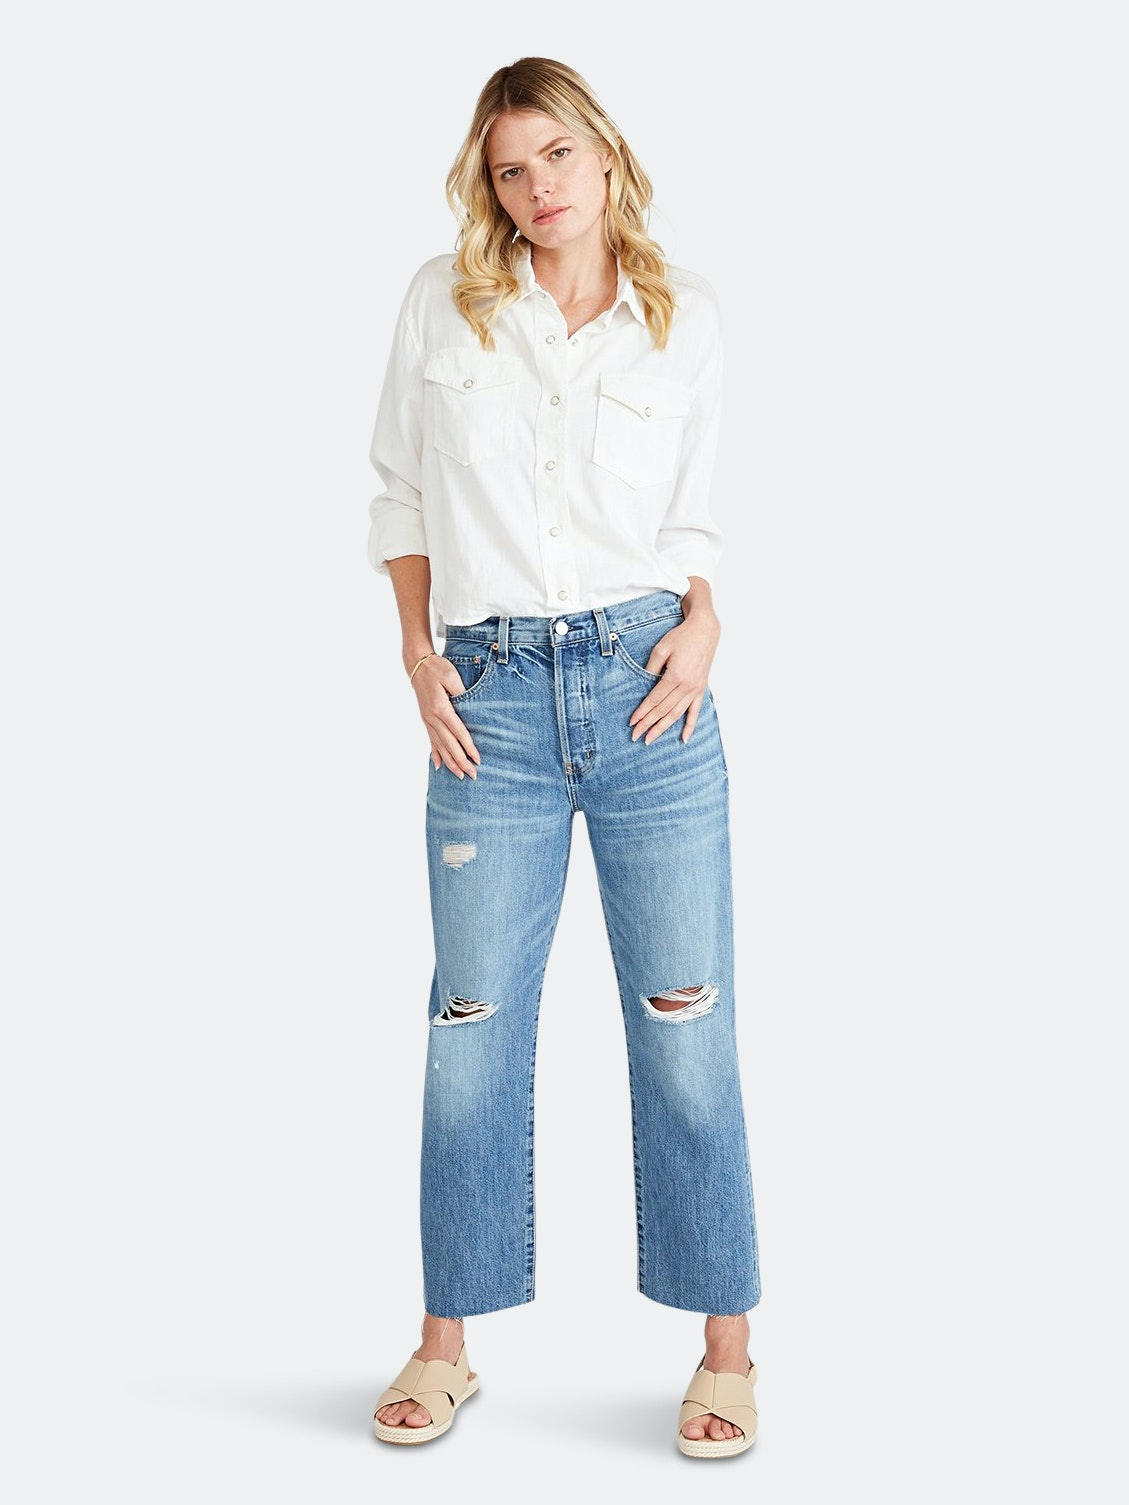 Tyler High Rise Ankle Straight - Fleetwood by ÉTICA DENIM, available on verishop.com for $158 Alessandra Ambrosio Pants Exact Product